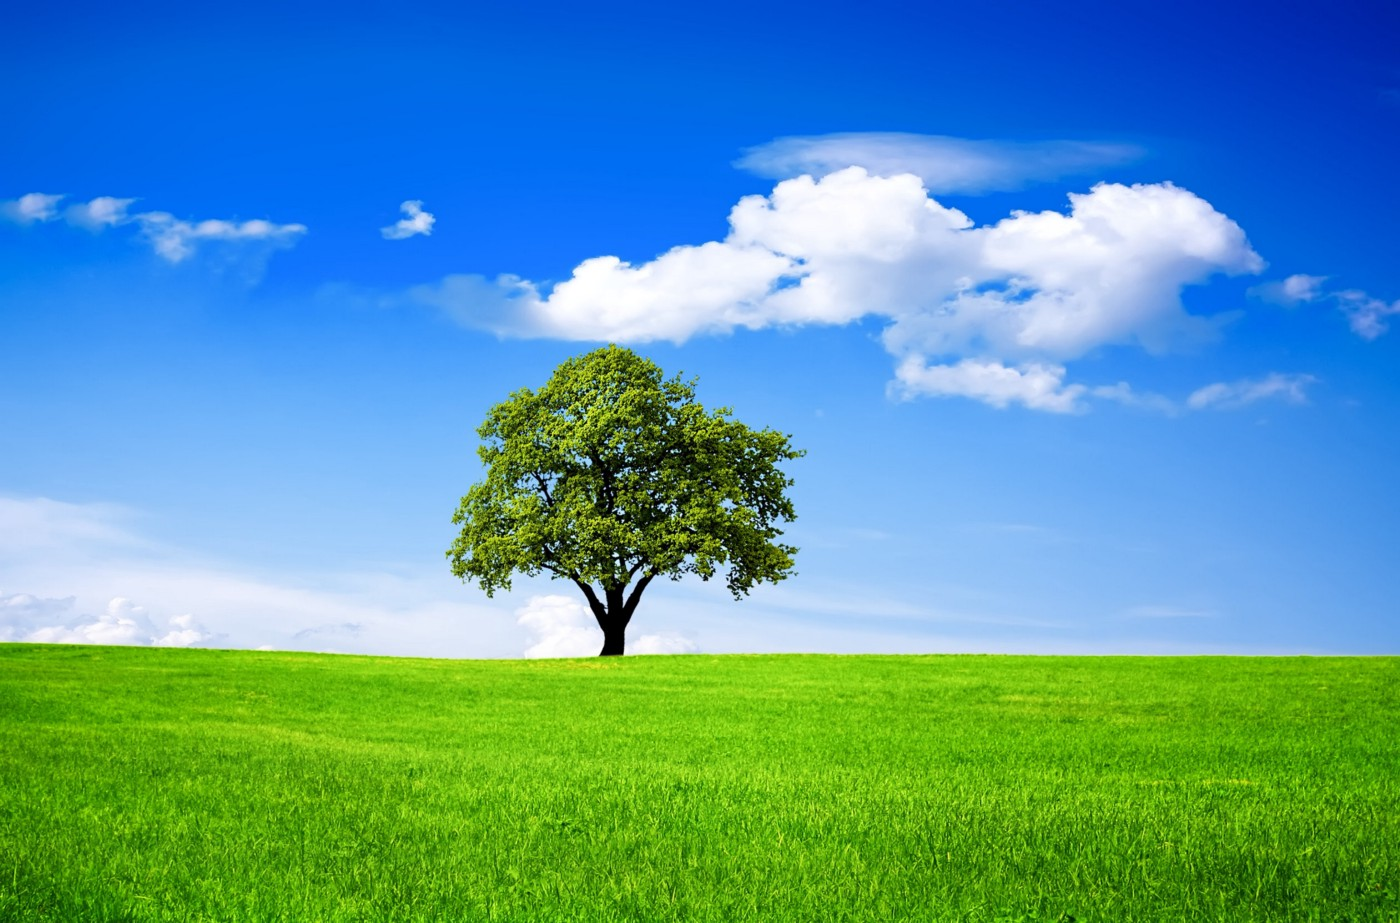 Wide open green field and blue sky with tree in the distance